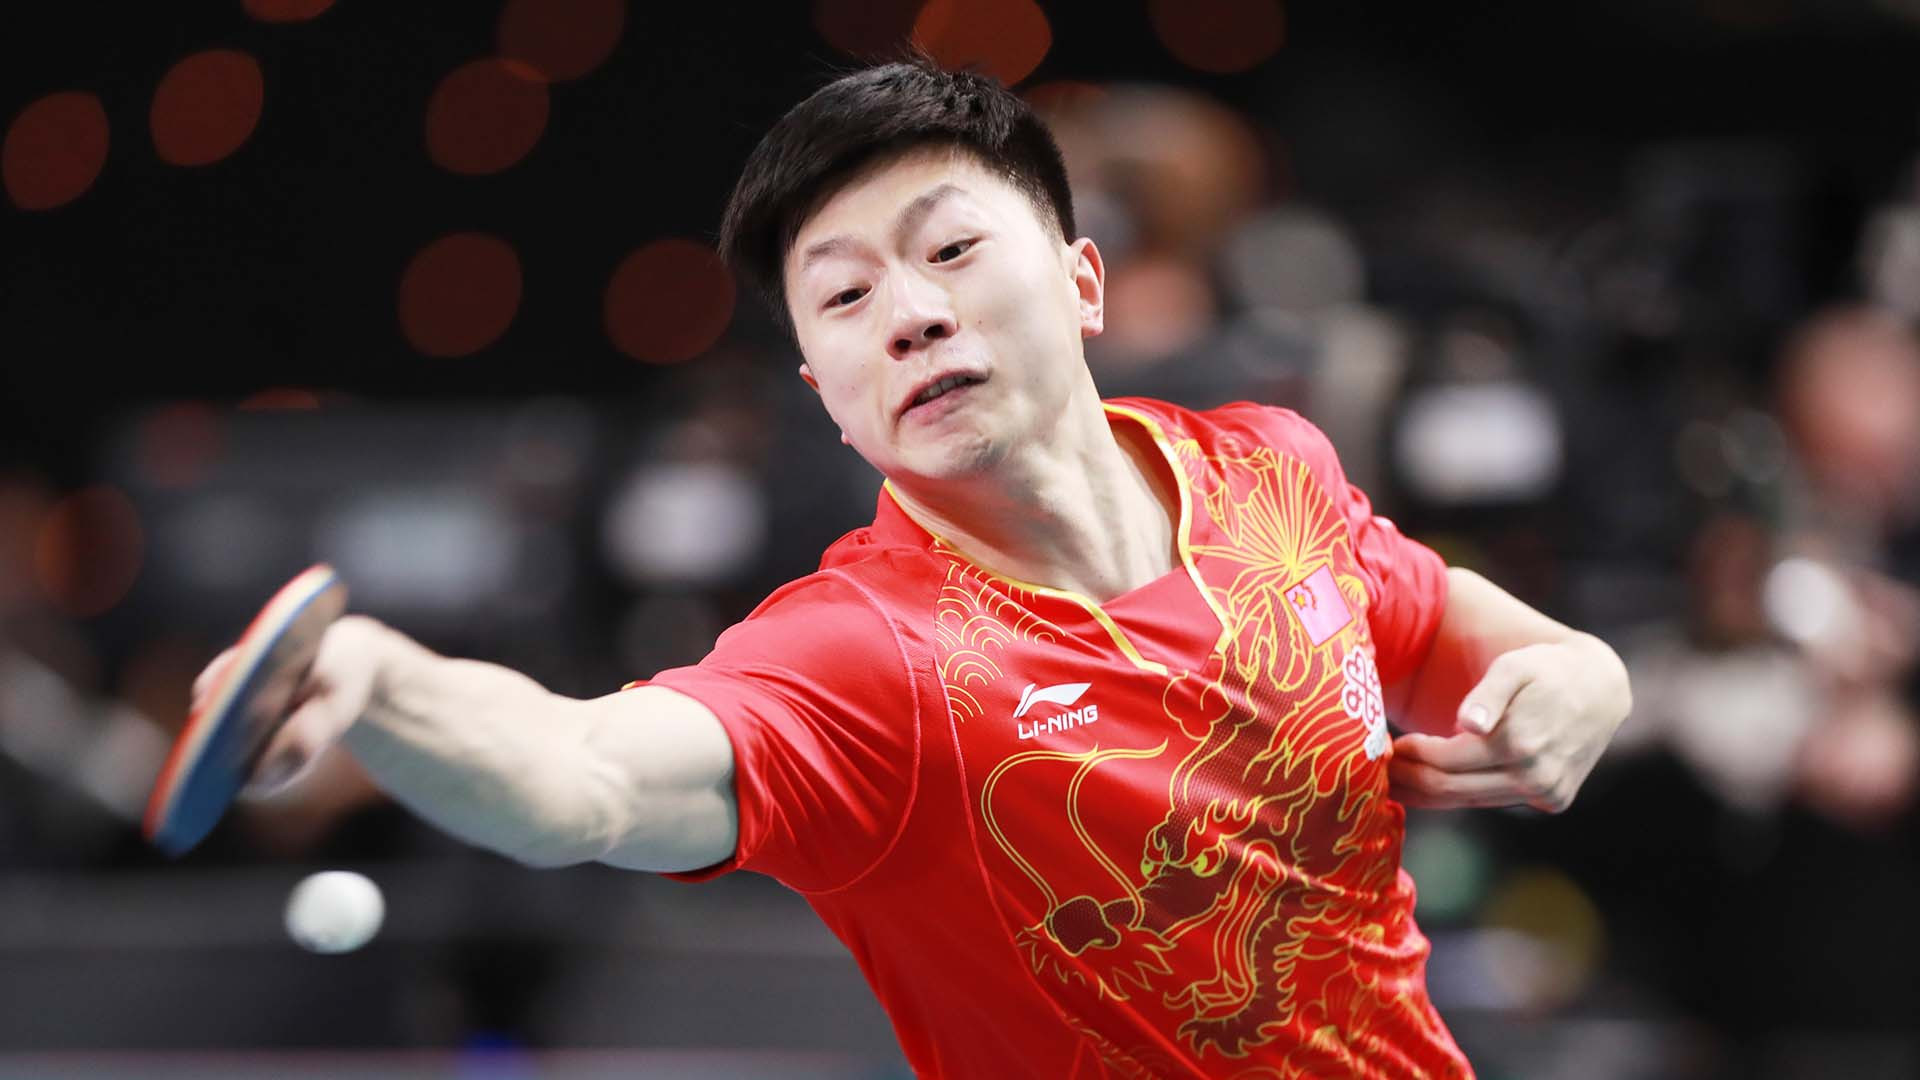 Business as usual as China's men and women win ITTF Team World Cup in London